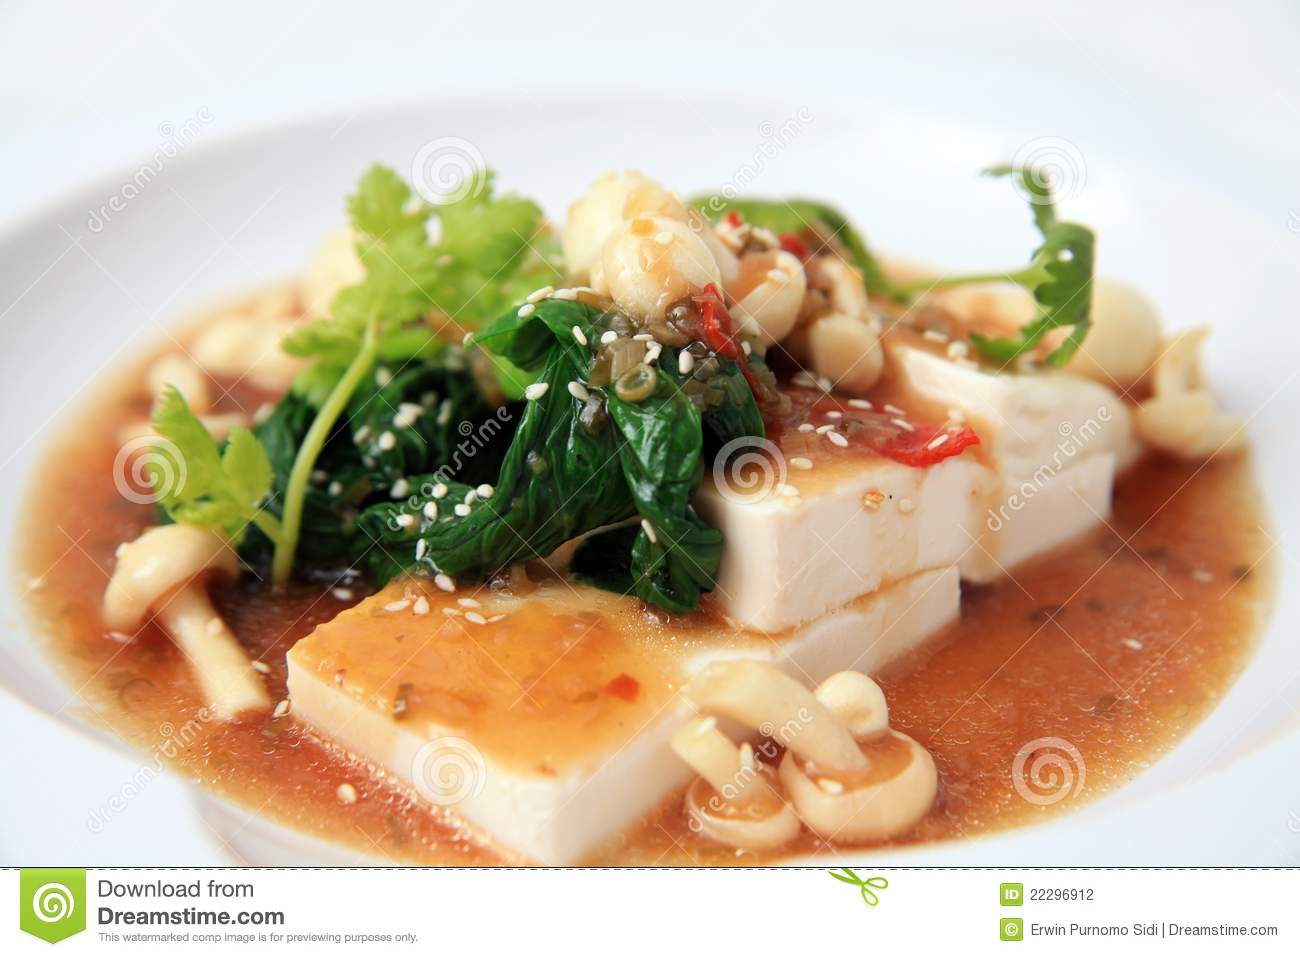 Chinese Tofu With Xo Sauce Stock Photography - Image: 22296912